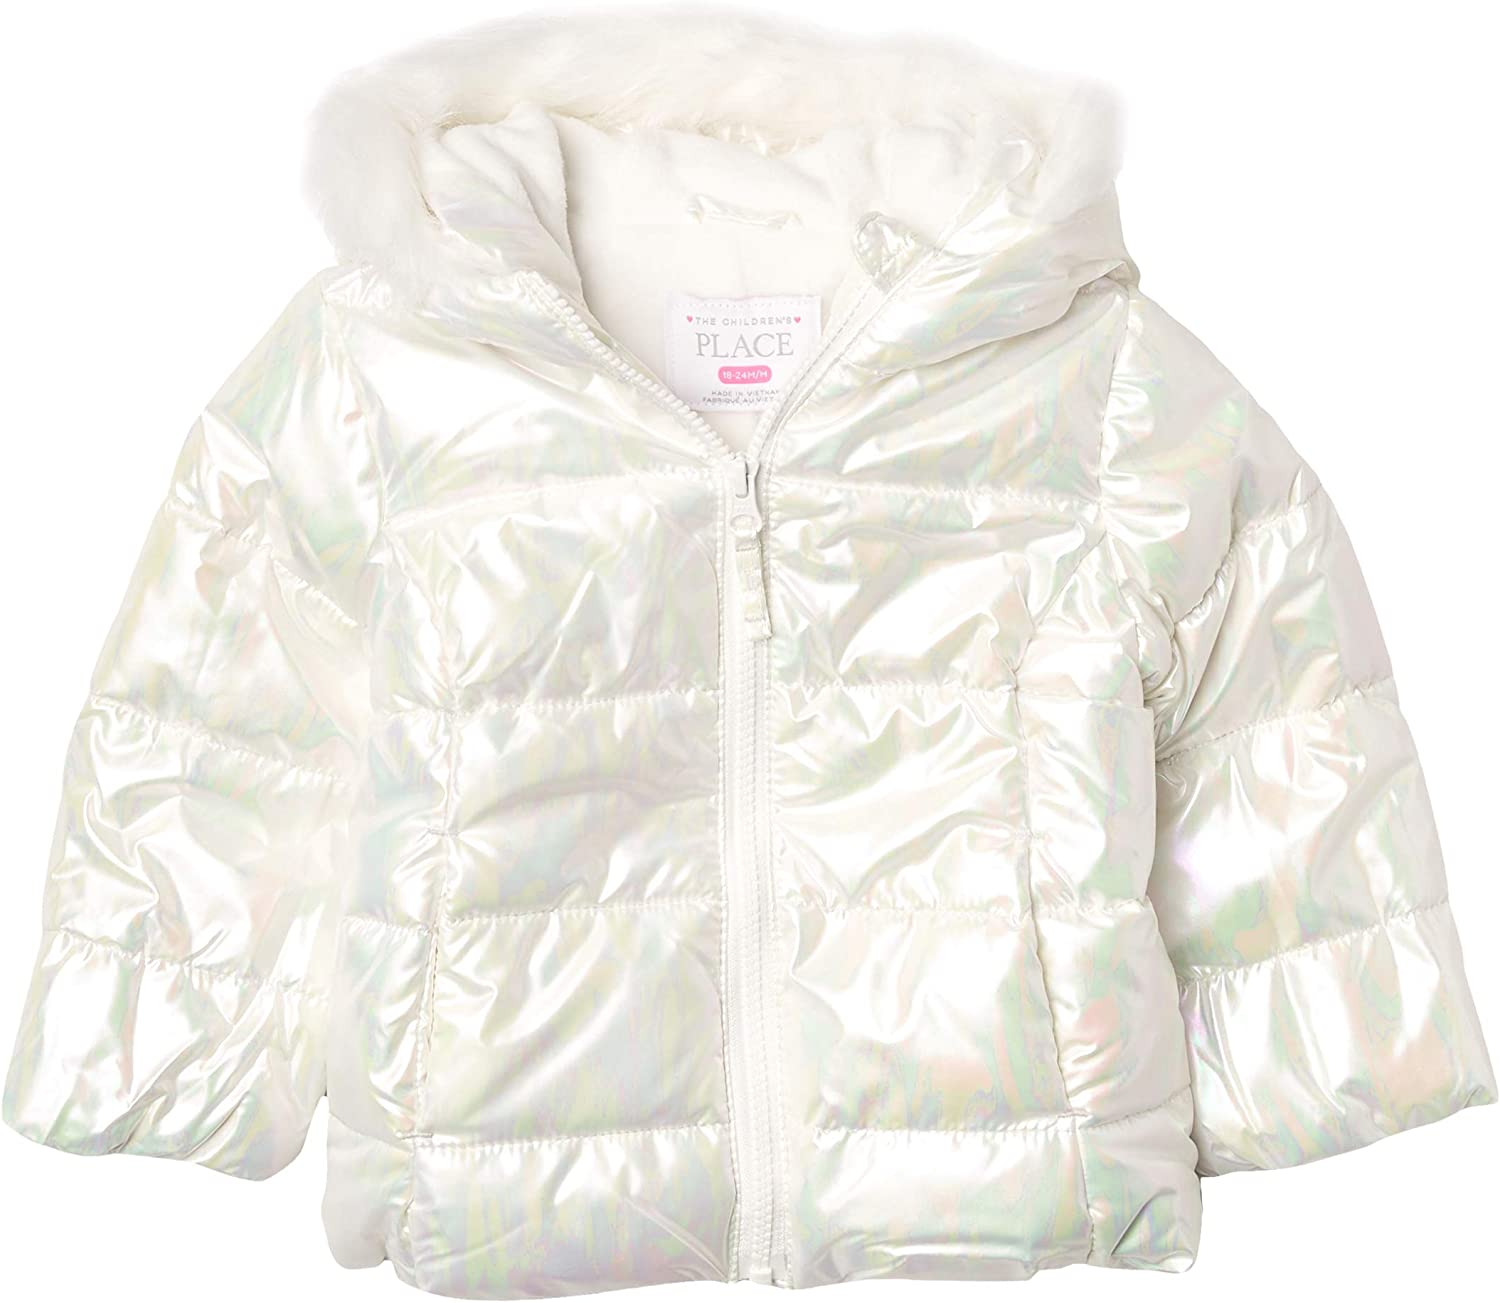 The Children's Place Girls' Toddler Foil Quilted Puffer Jacket